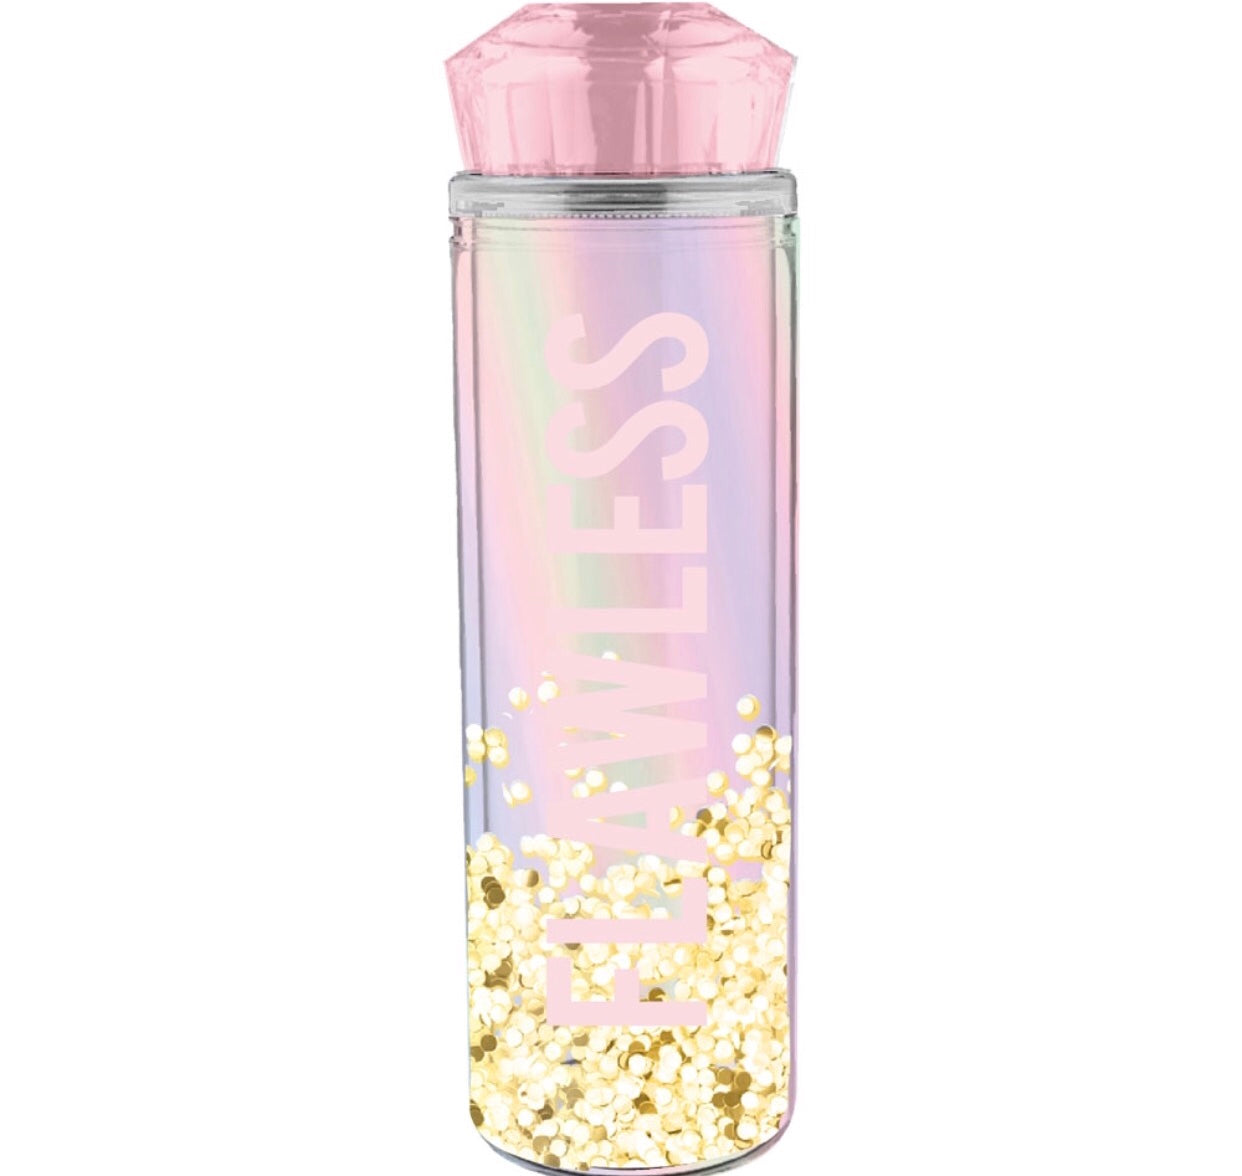 flawless water bottle with pink and gold sequins